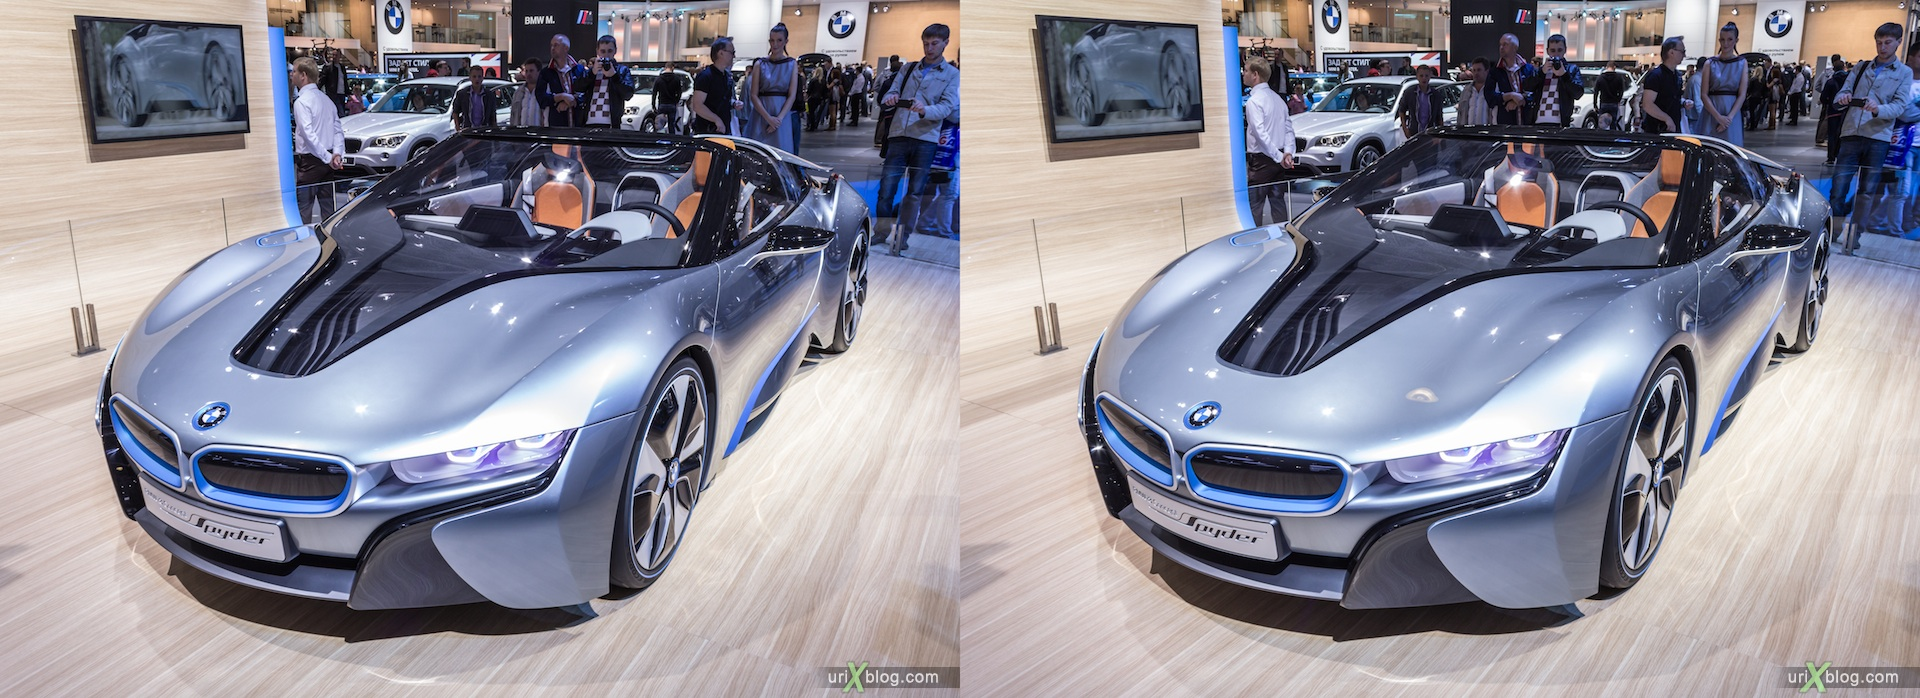 2012, BMW i8 Concept Spyder, Moscow International Automobile Salon, auto show, 3D, stereo pair, cross-eyed, crossview